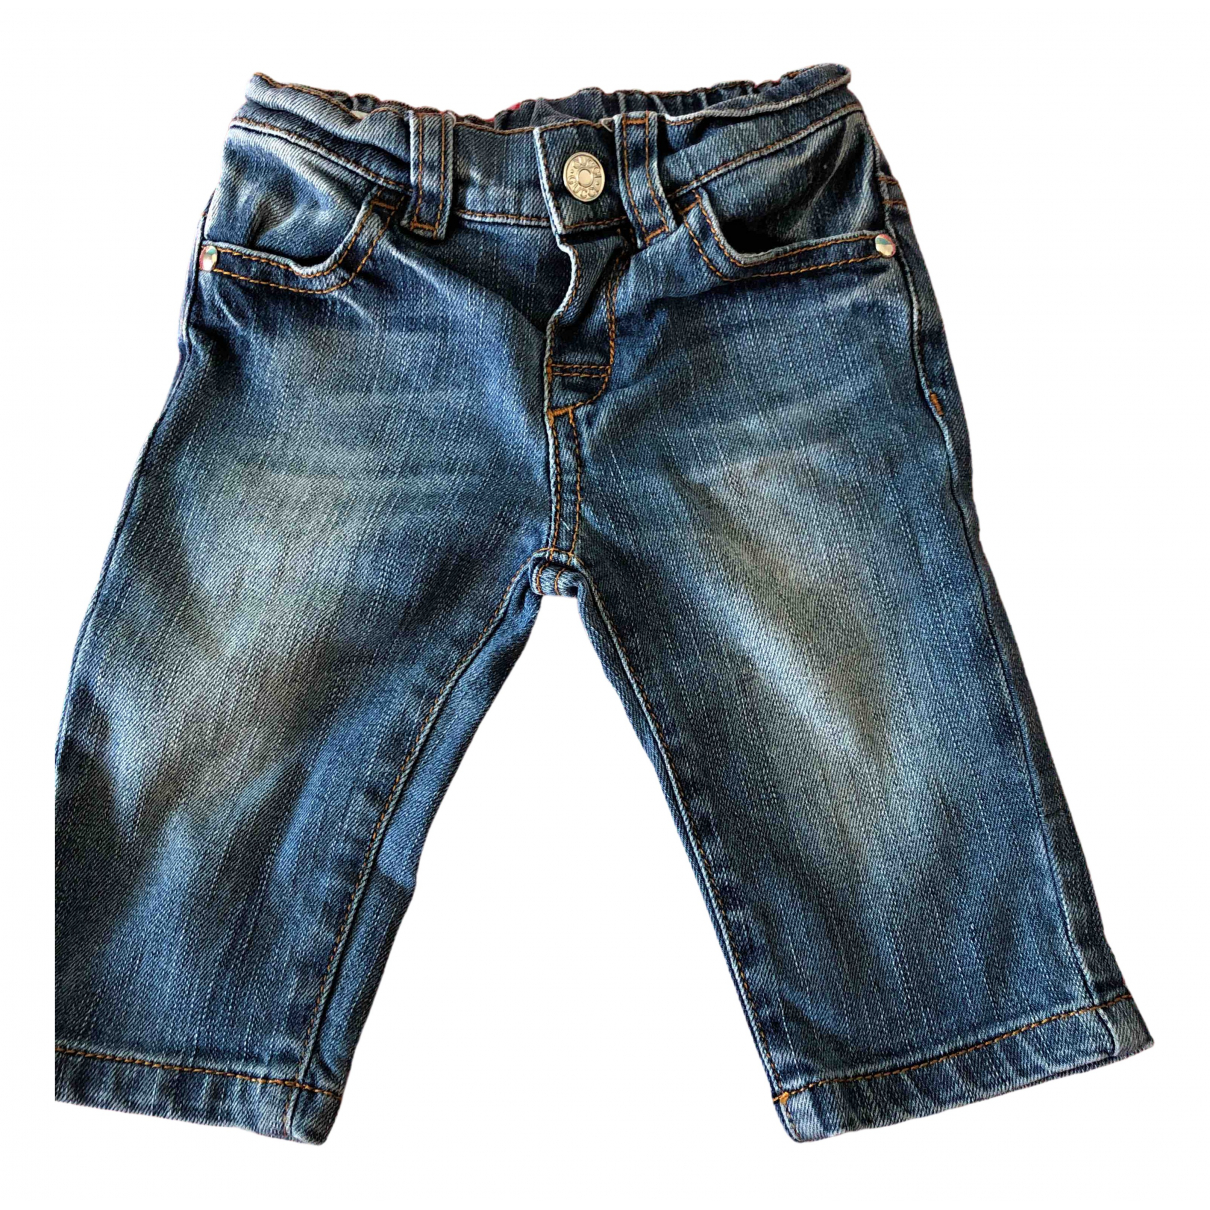 Gucci \N Denim - Jeans Trousers for Kids 3 months - up to 60cm FR